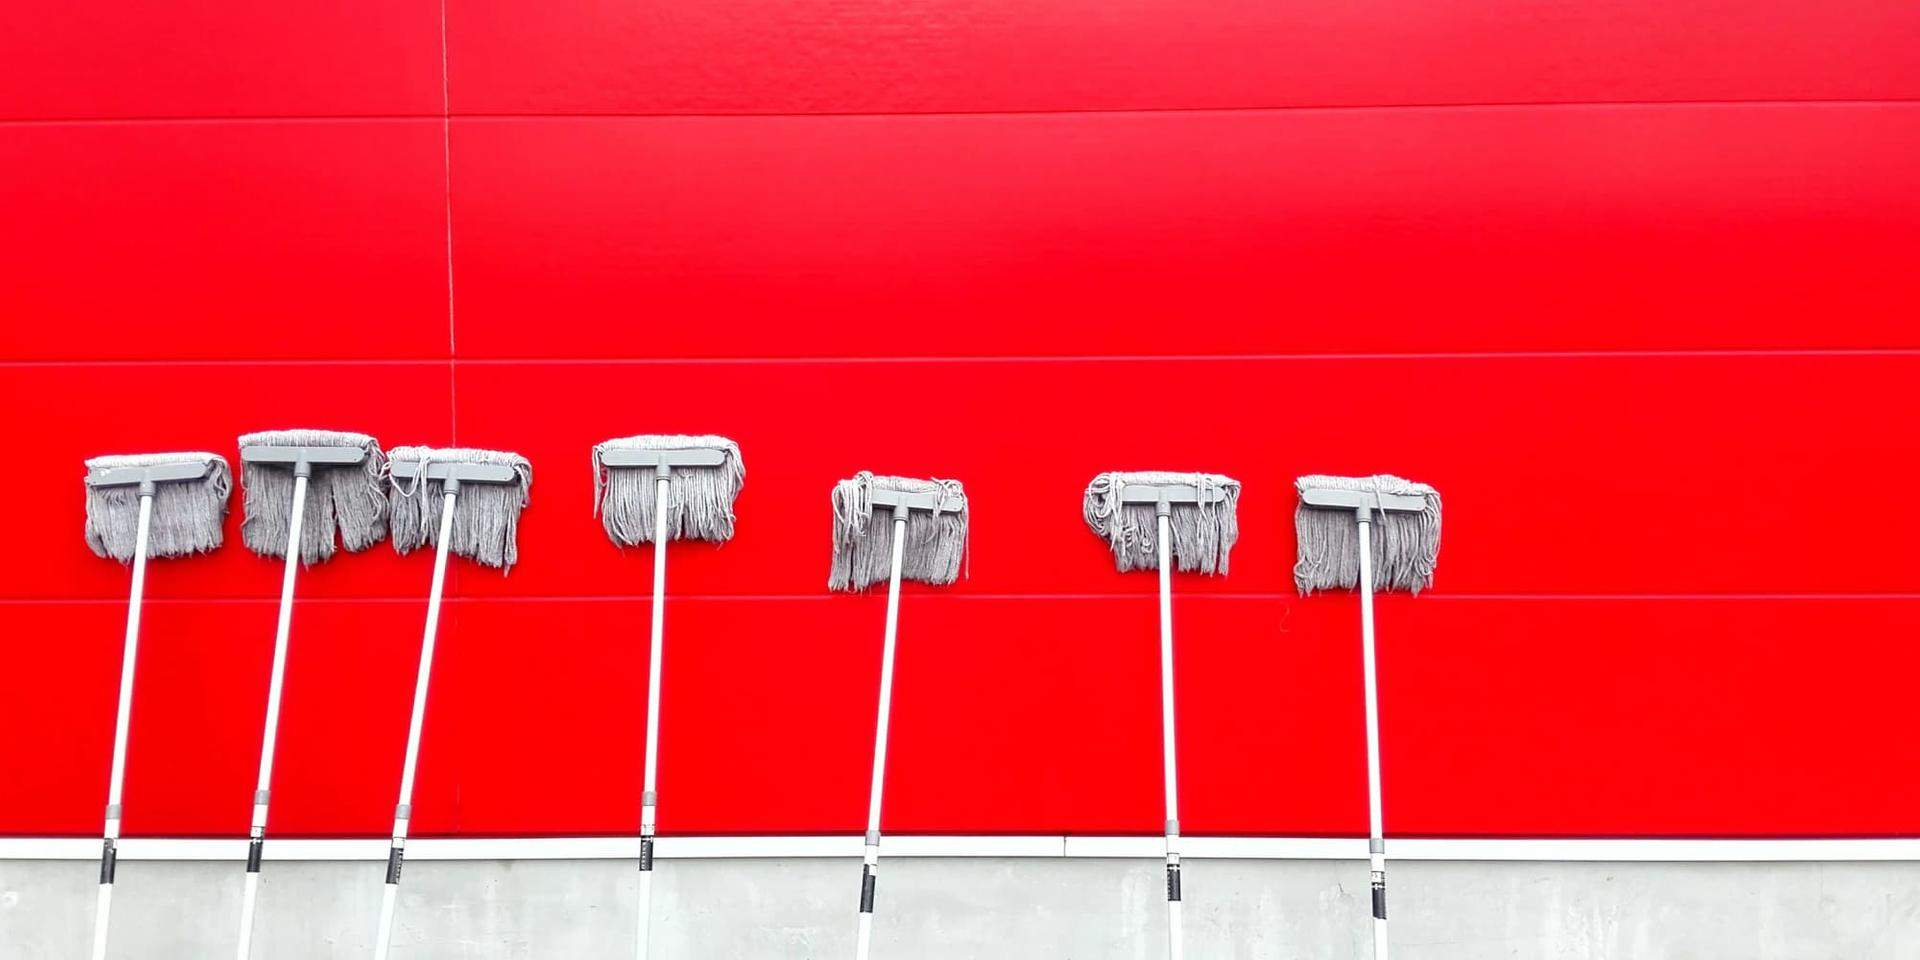 Seven mops leaning against a red wall